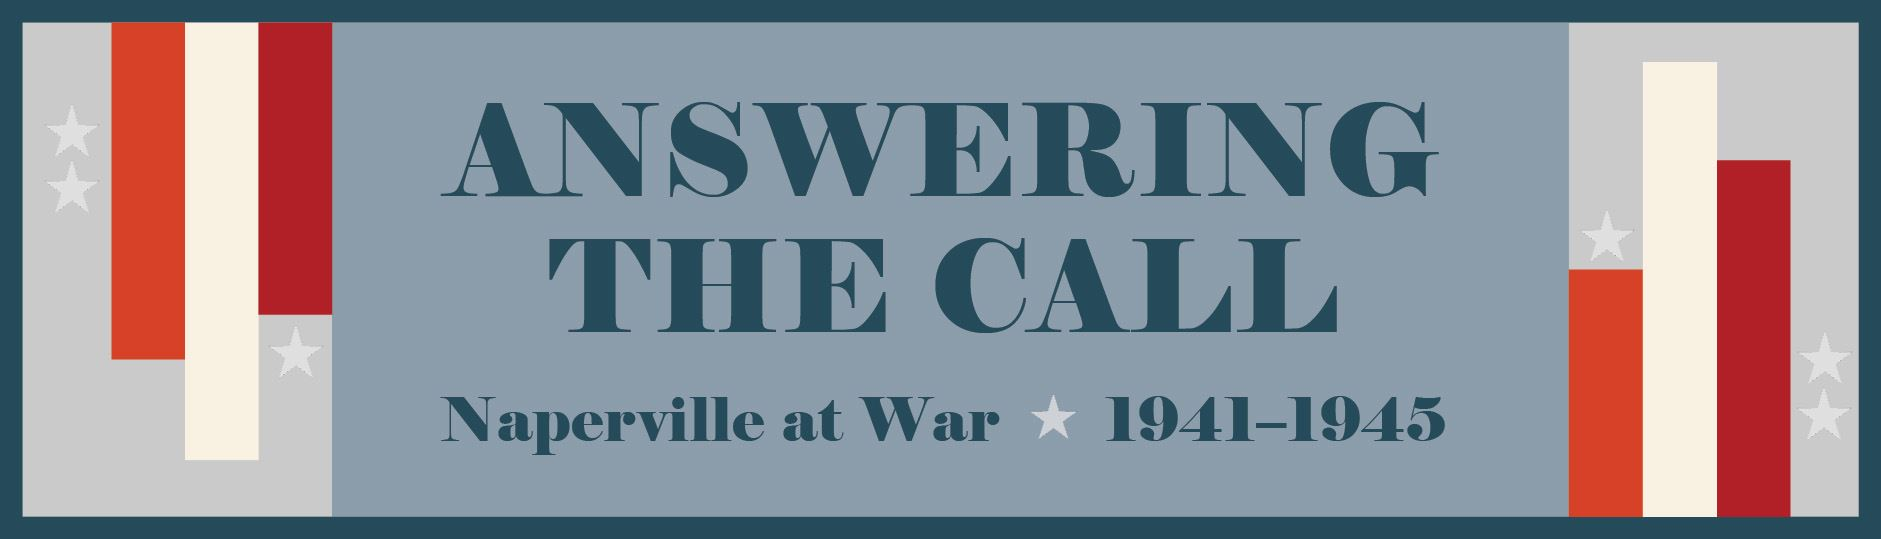 Answering the Call: Naperville at War